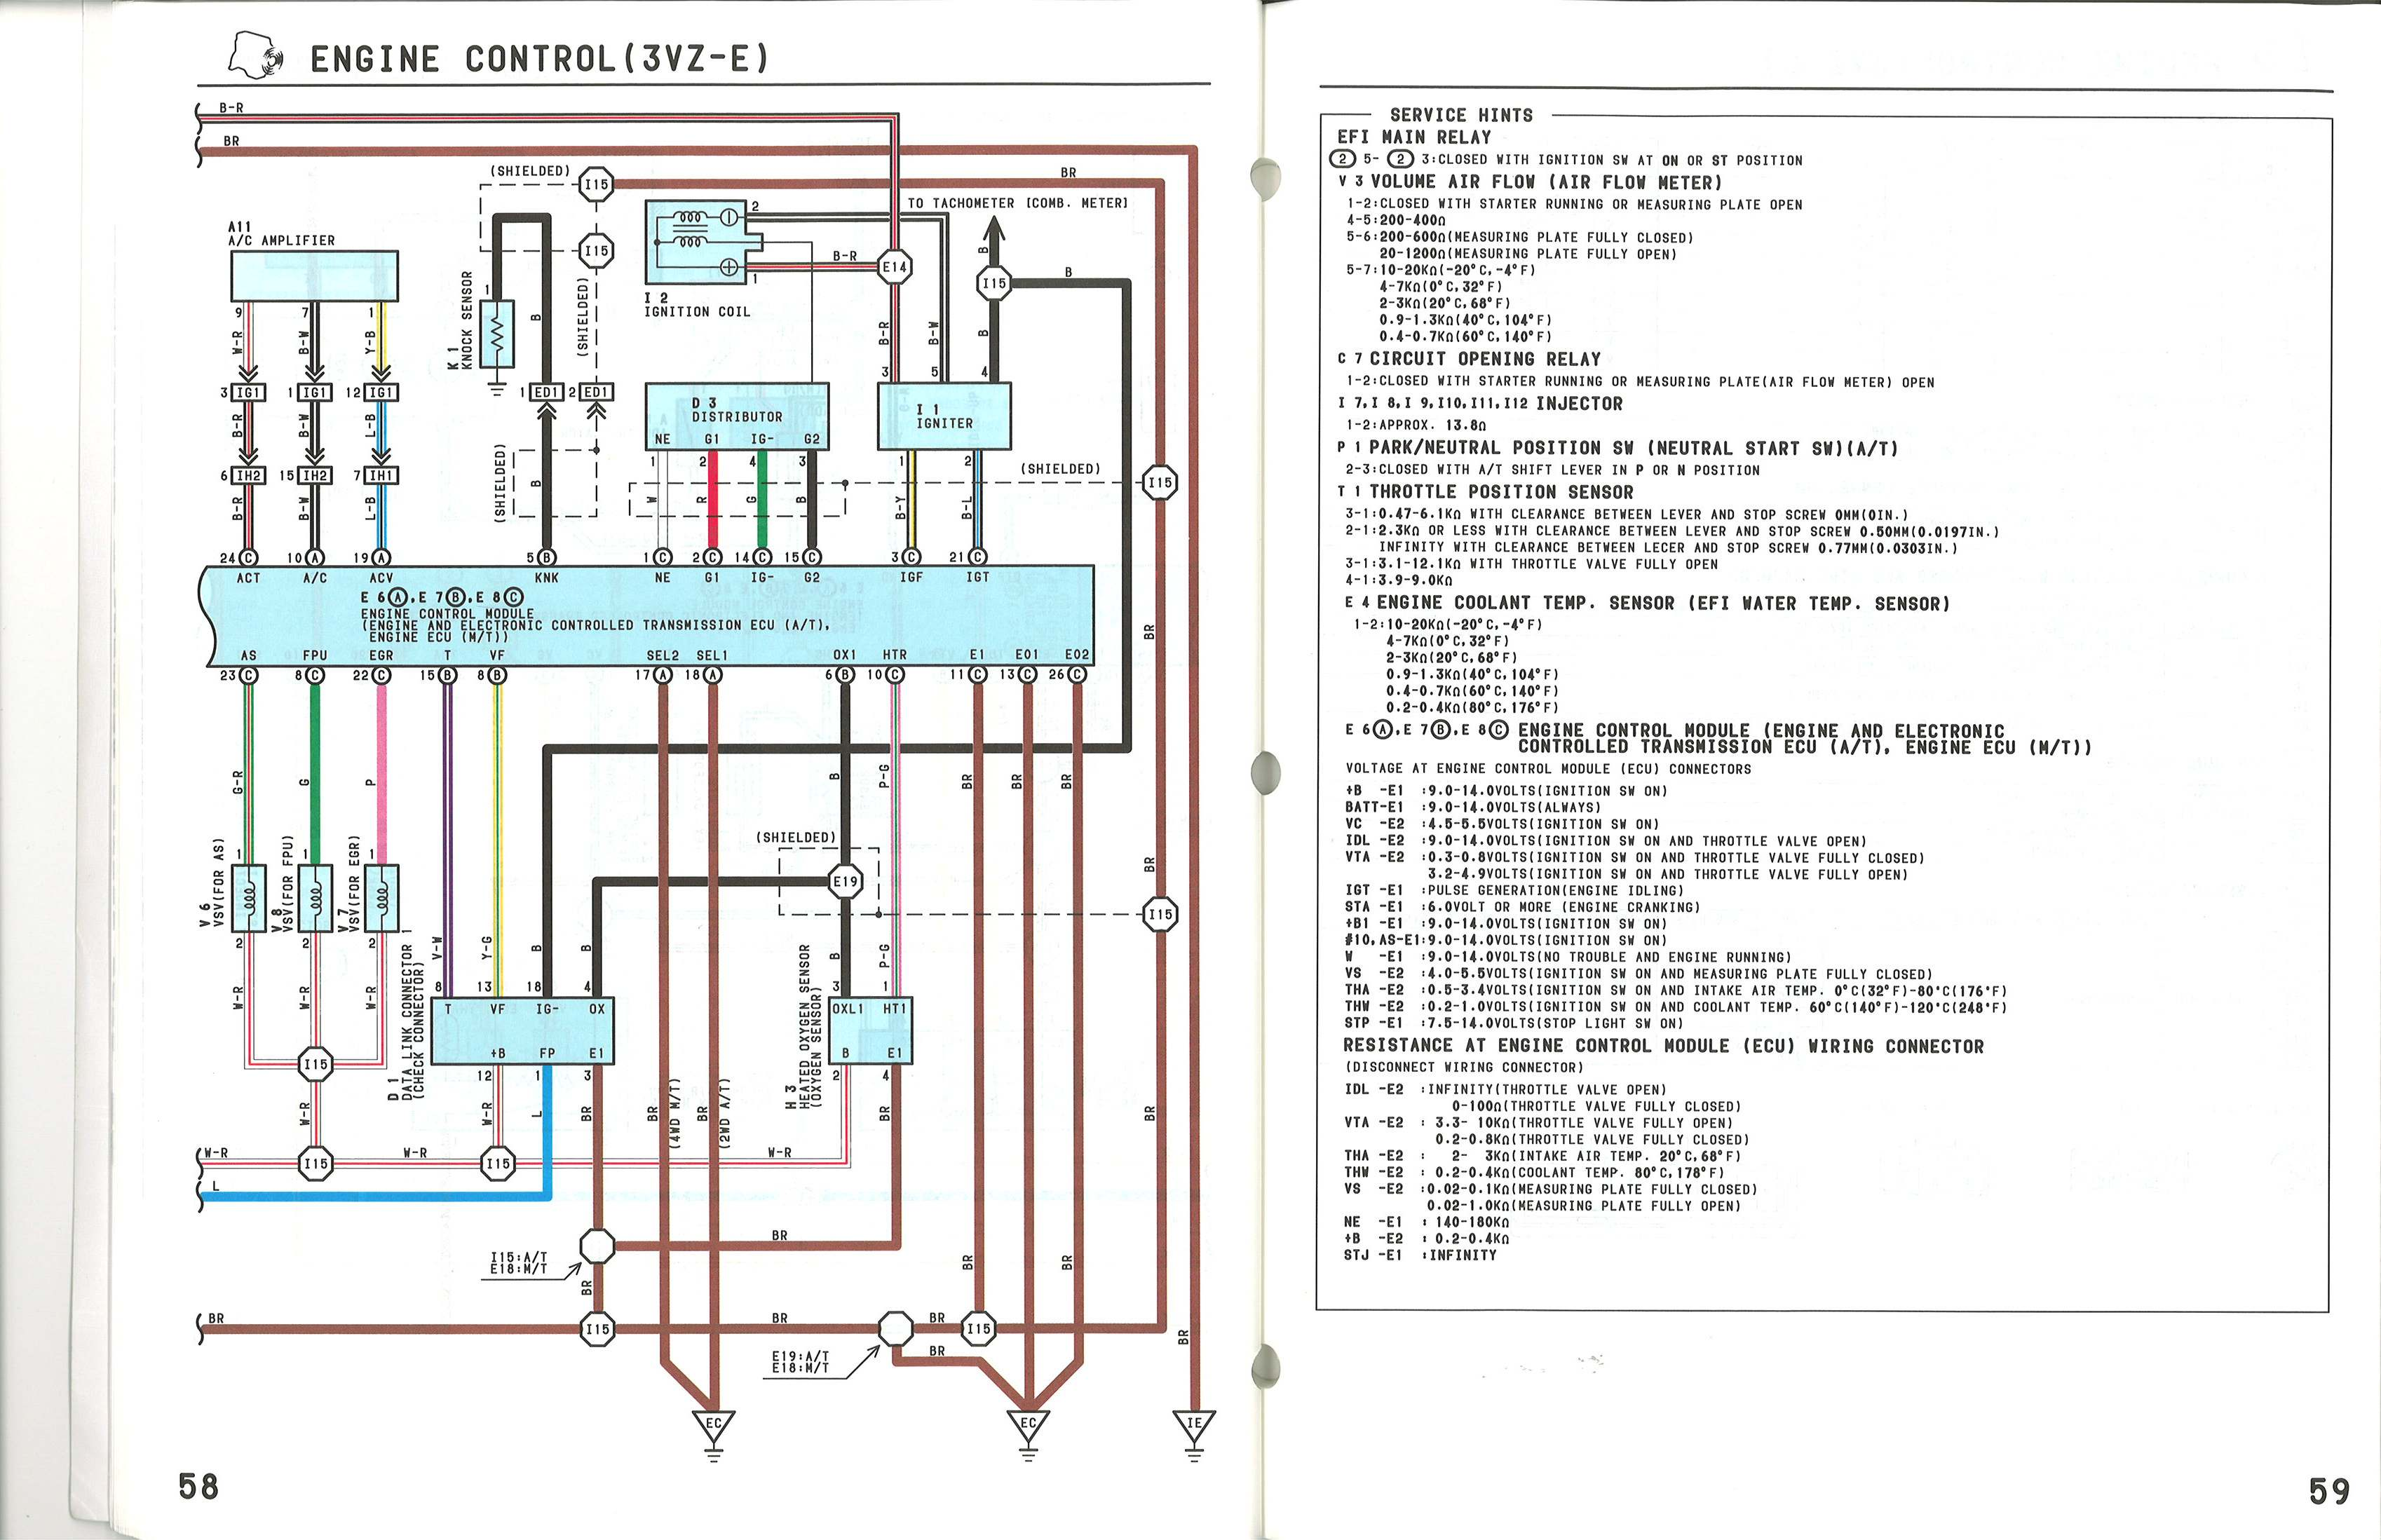 Engine_Control_3vze_3 ecu diagram for 1988 3vz e yotatech forums toyota highlander ecu wiring diagram at eliteediting.co